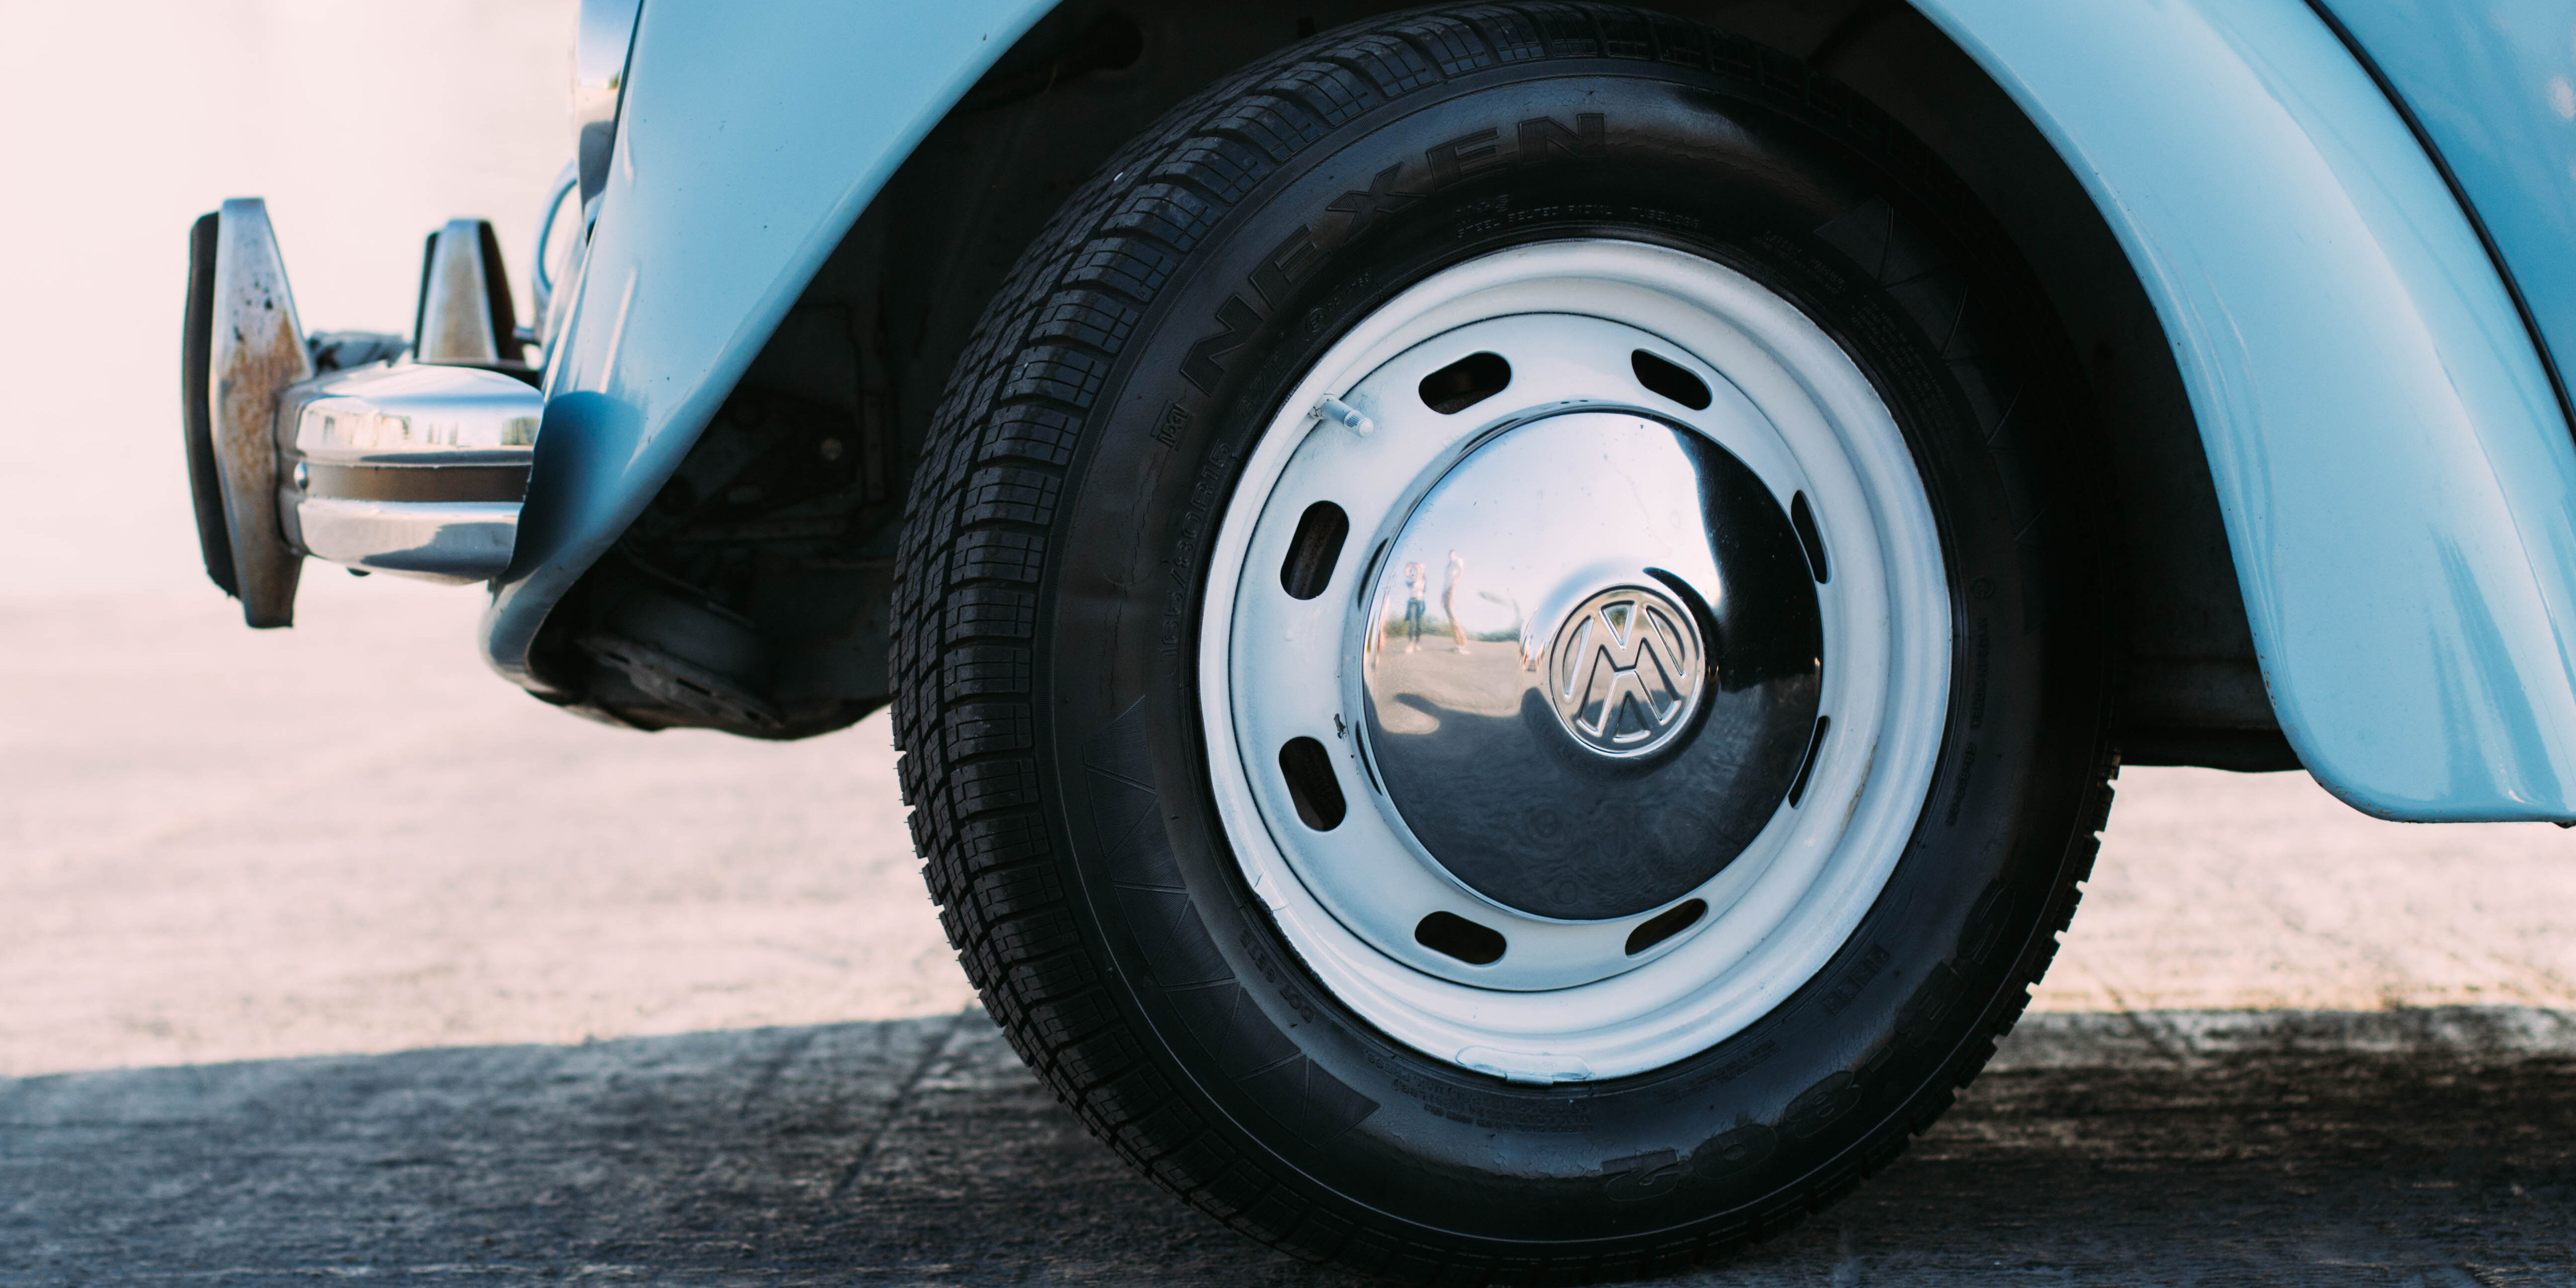 Image of blue VW tyre